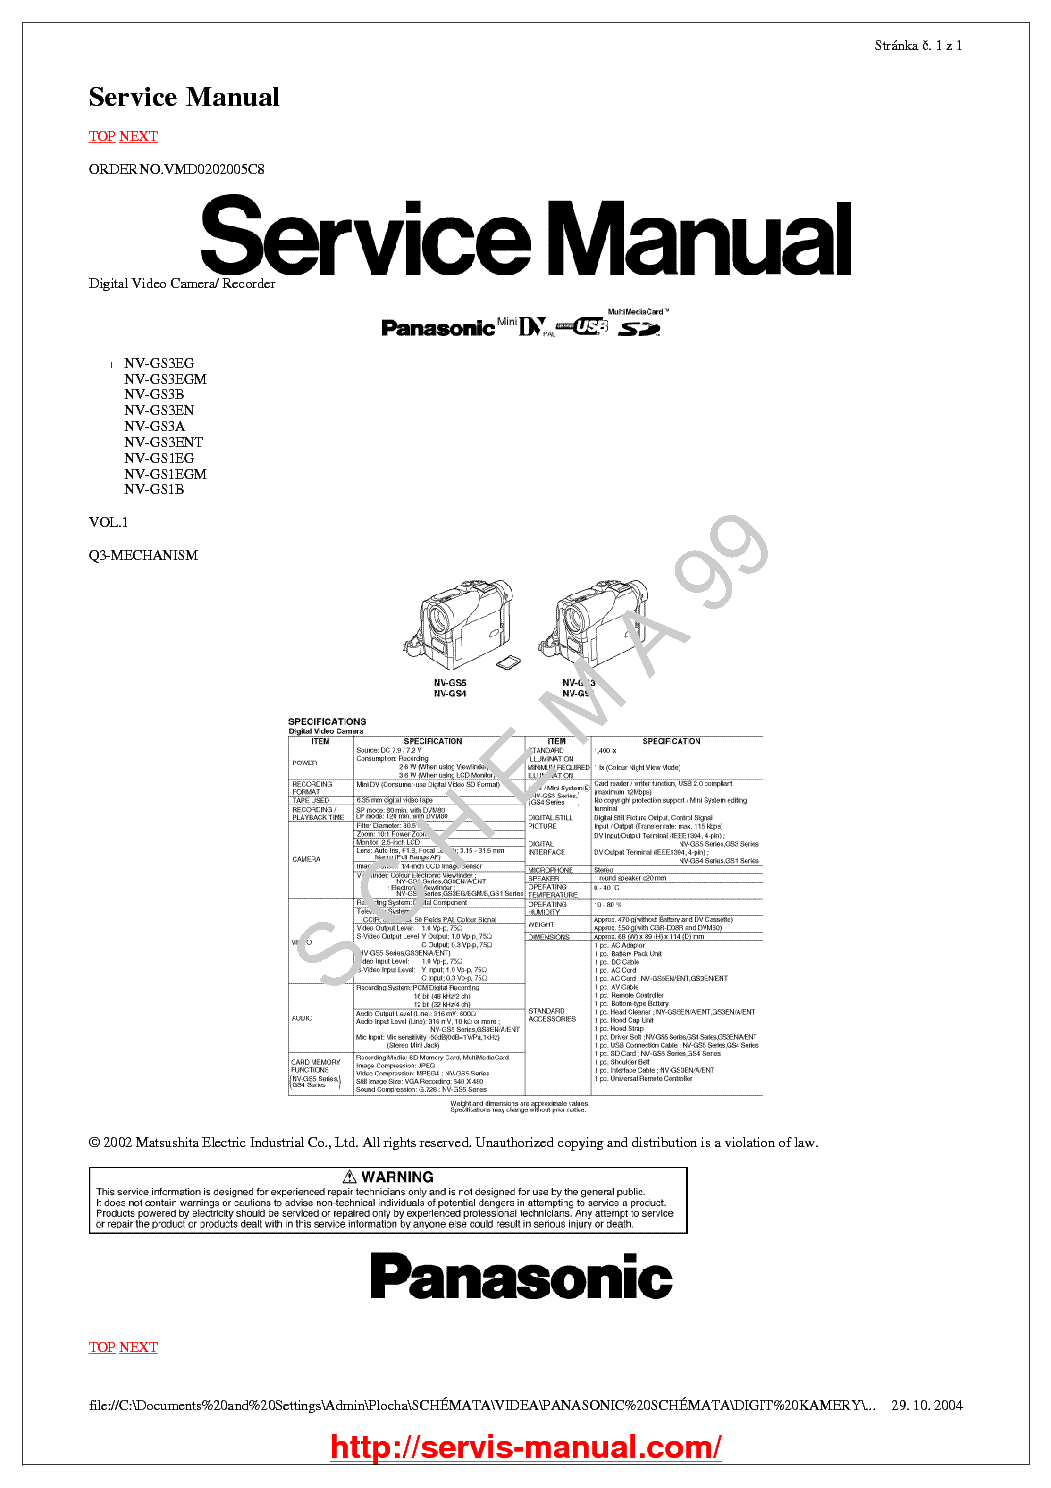 PANASONIC NV-GS1 GS3 SM Service Manual download